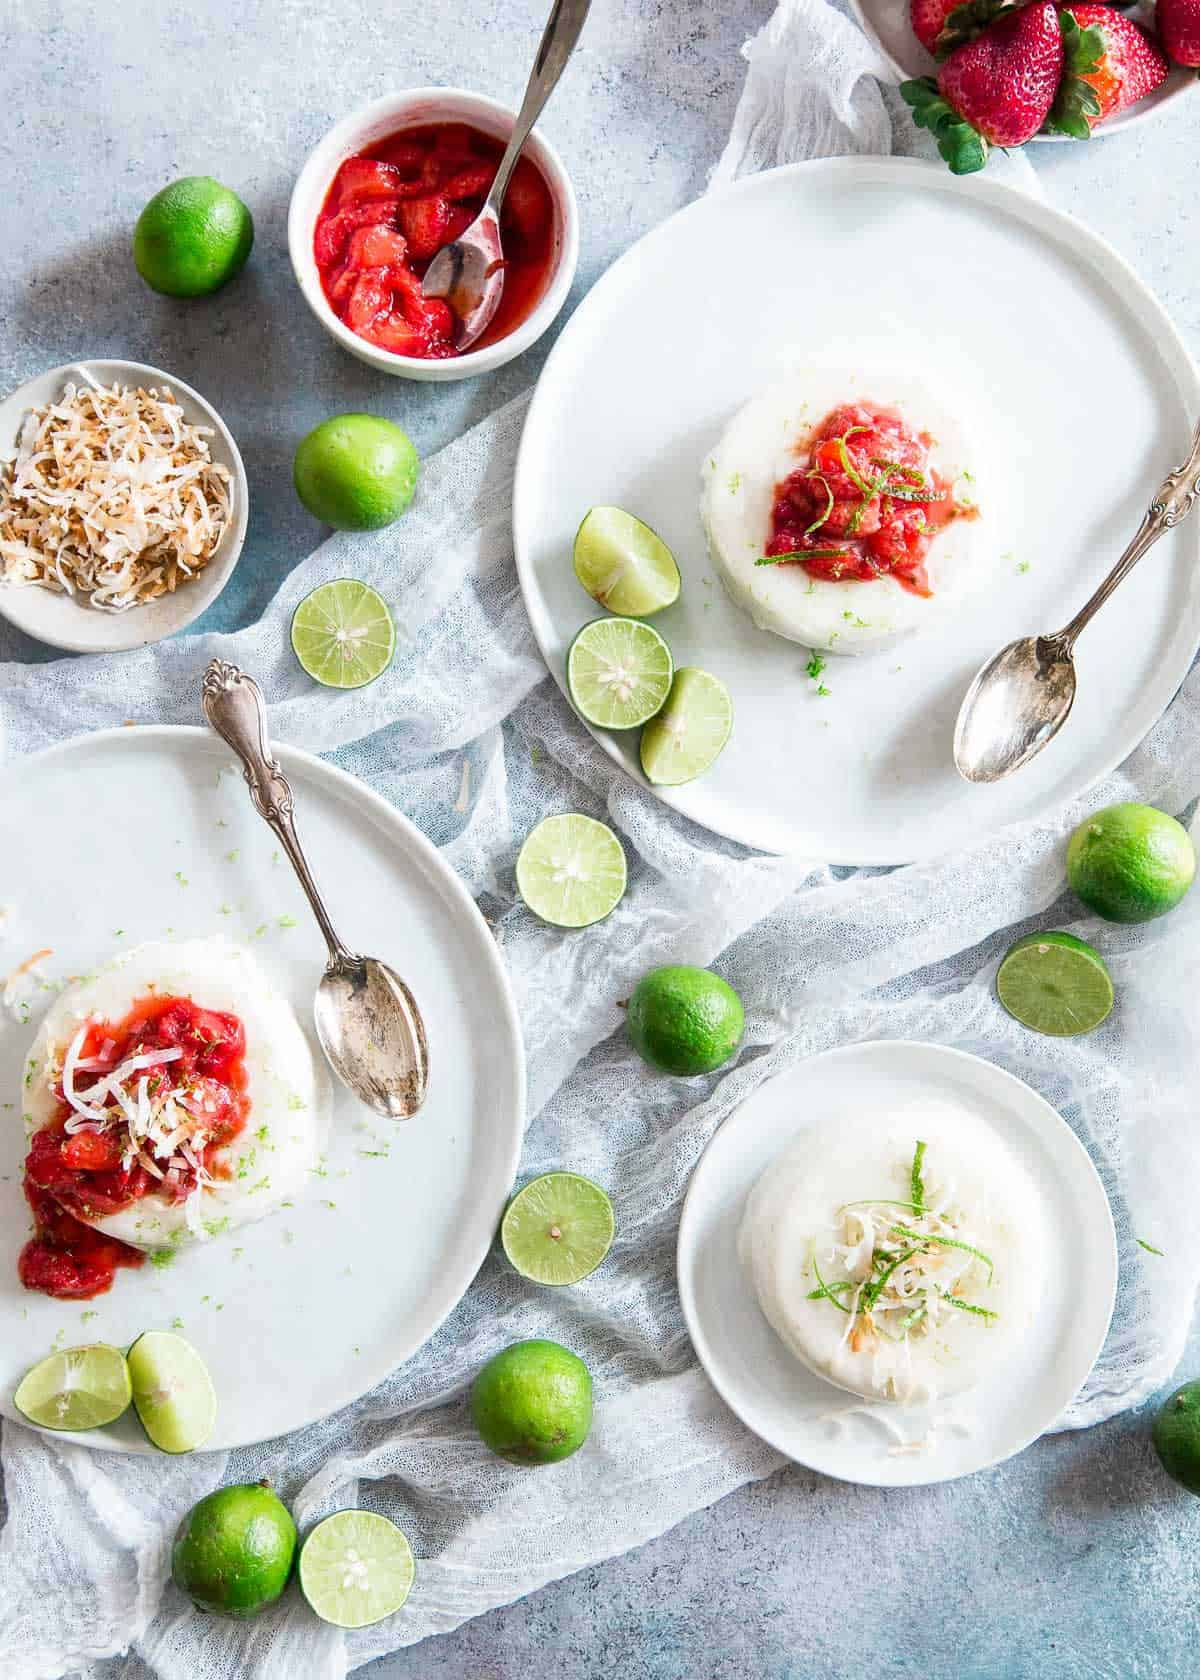 This creamy coconut panna cotta is dairy free and filled with tart key lime flavor.